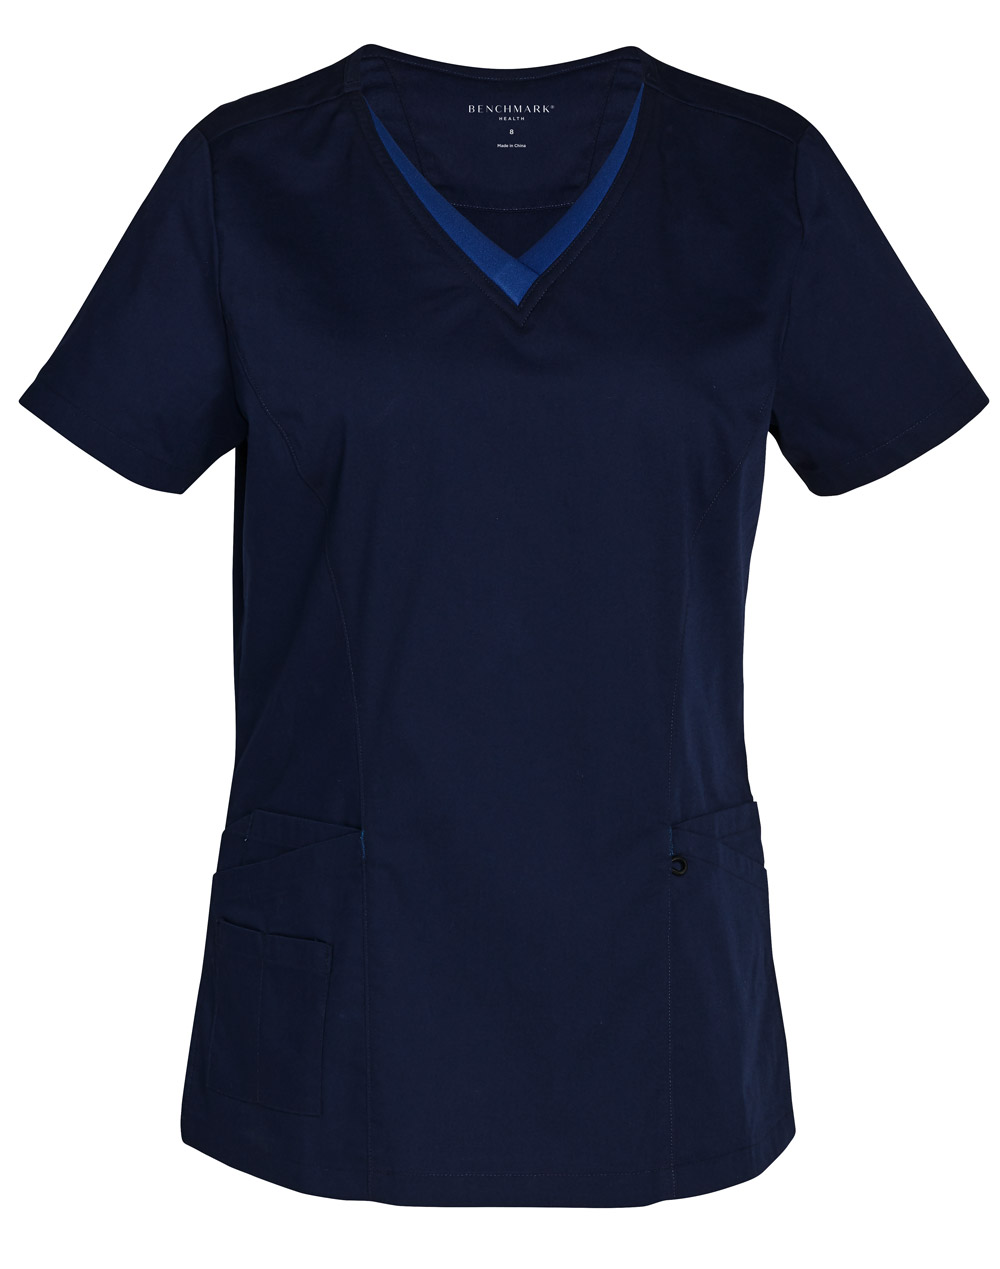 Order Online Navy-Royal Ladies v-Neck Contrast Trim Scrub Top in Perth